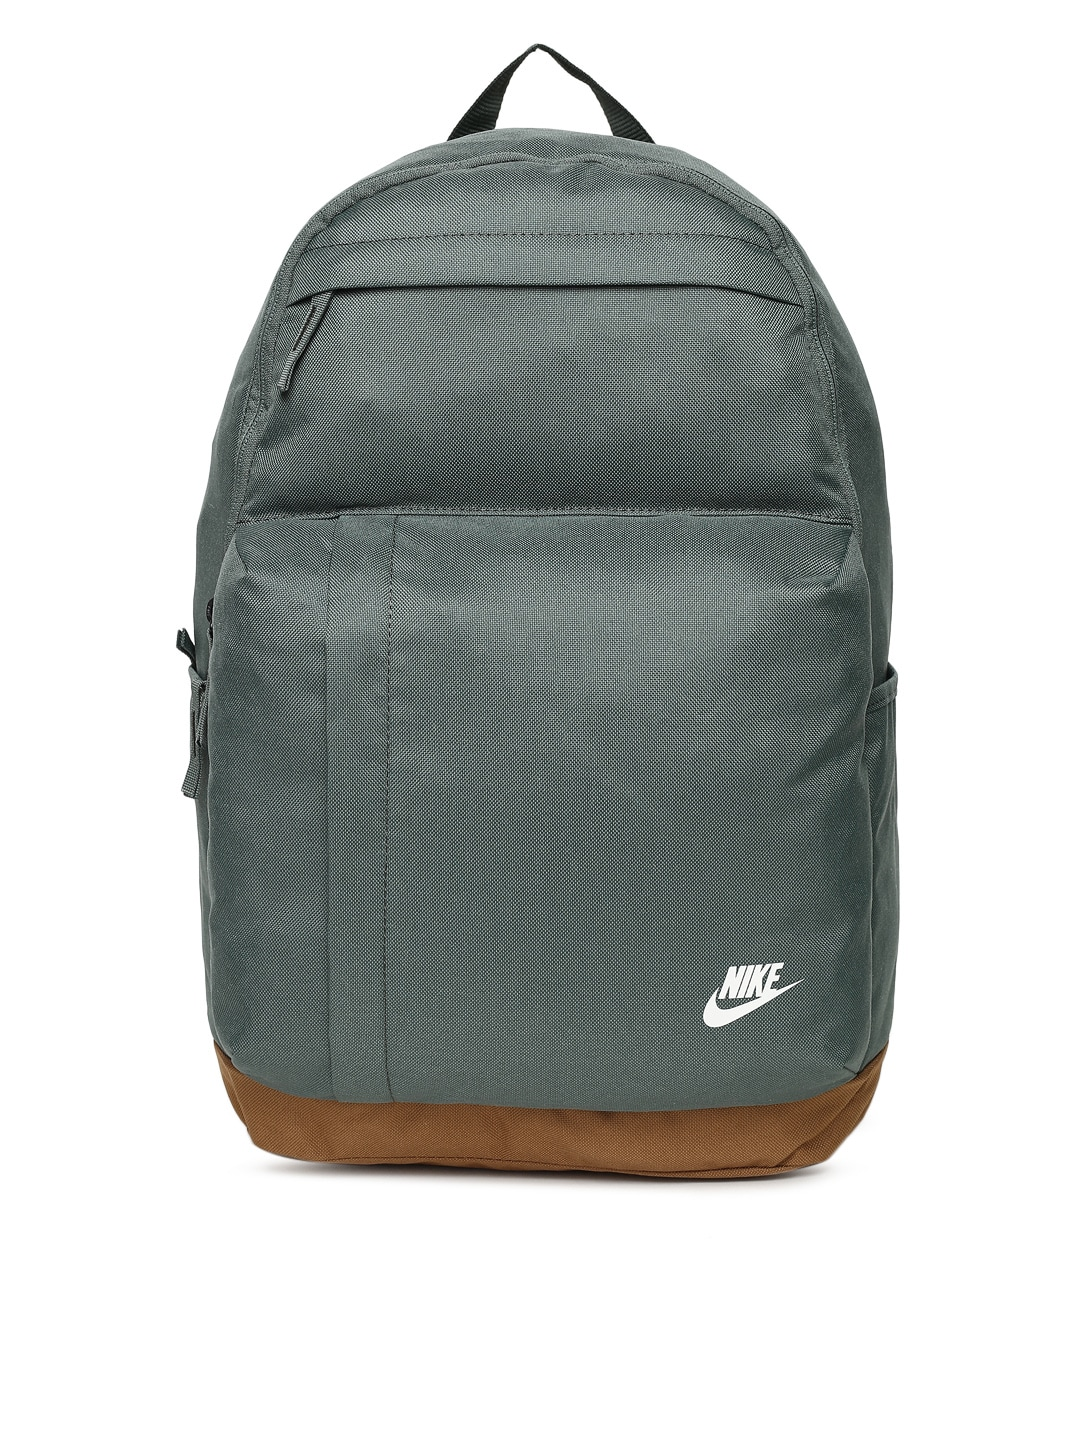 bd4d6dcdcb Nike Bags - Buy Nike Bag for Men